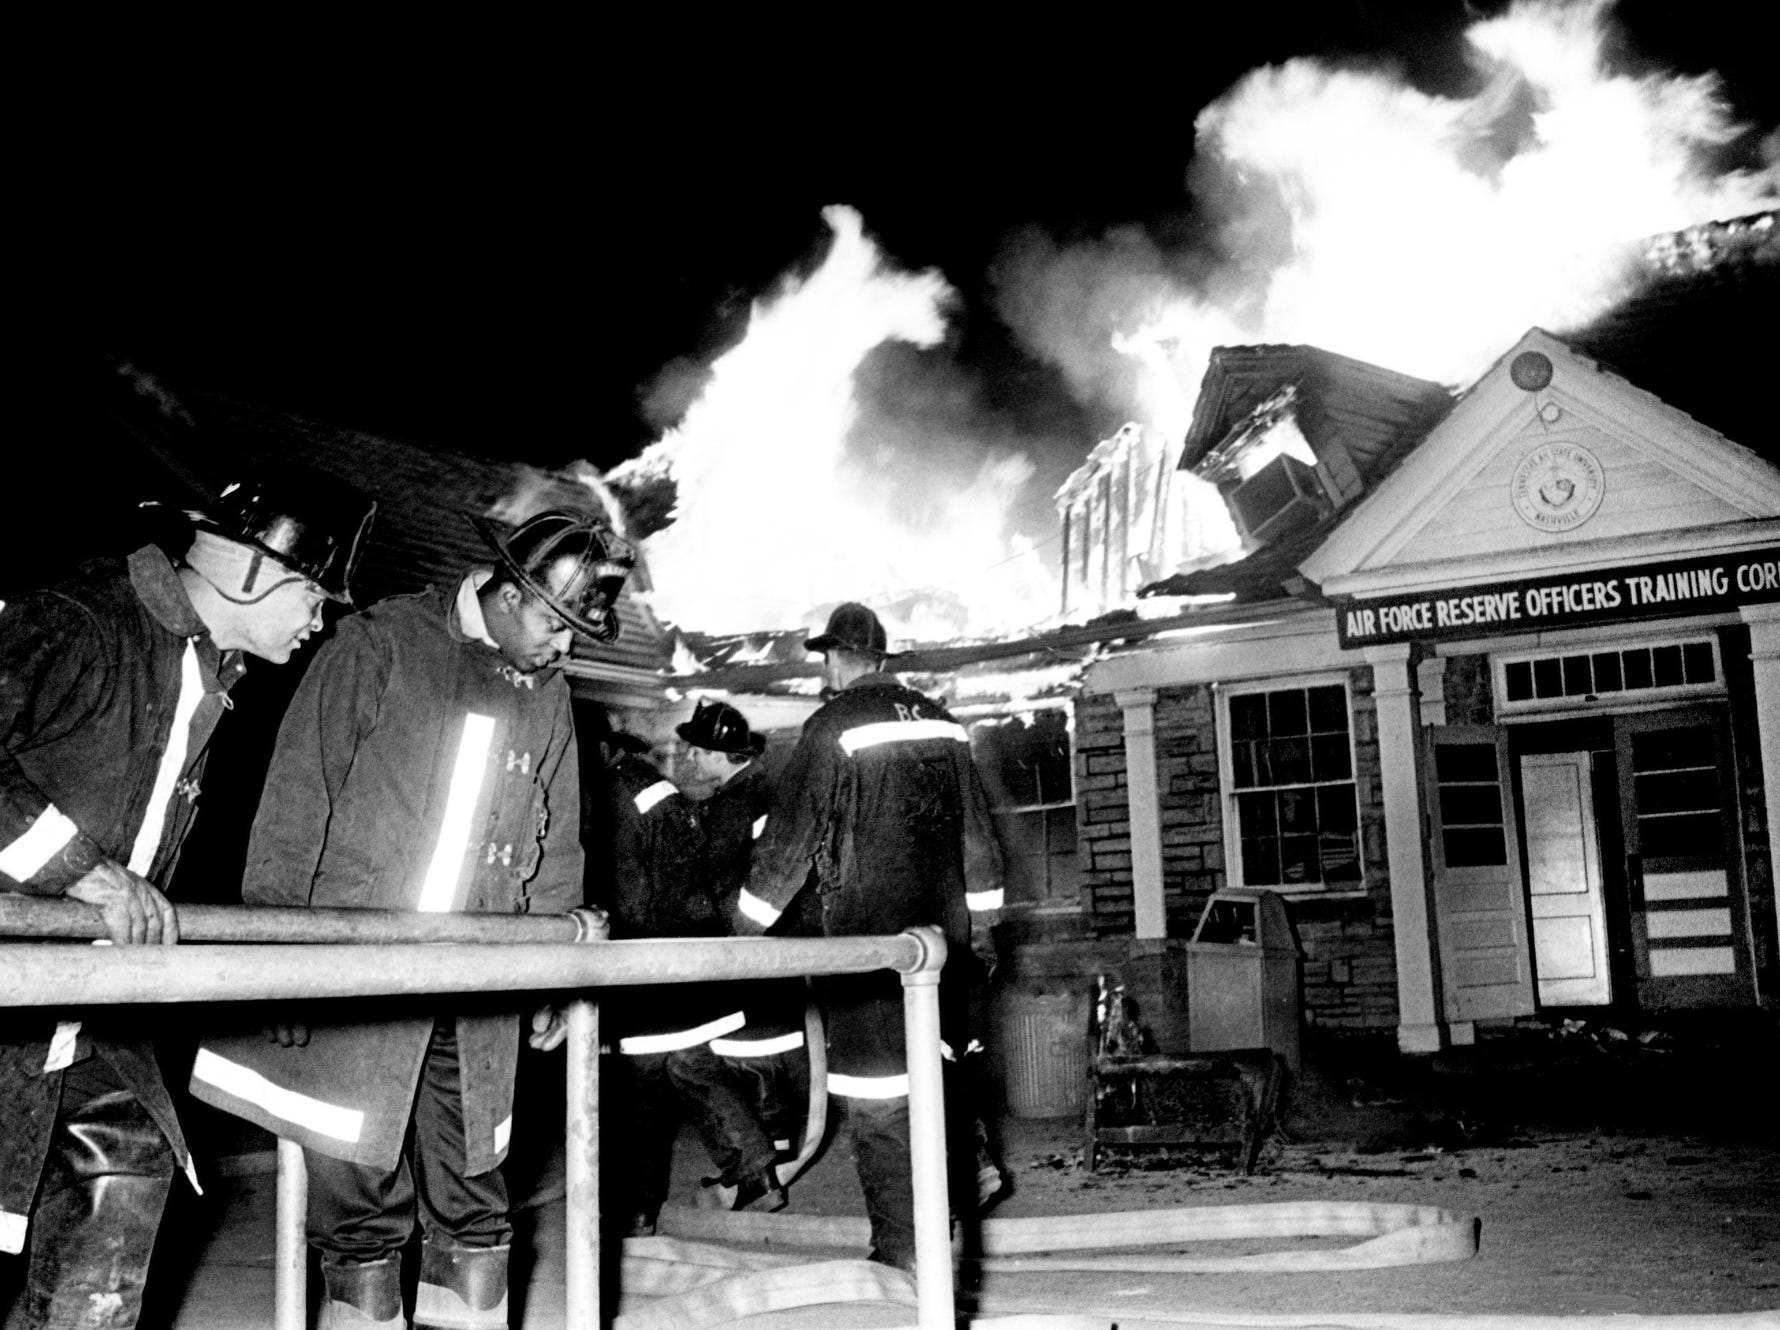 Metro firefighters lay out their hoses to start battling an out-of-control blaze at the Air Force Reserve Officers Training Corps (ROTC) building on the campus of Tennessee A&I State University on April 7, 1968. Metro police said the fire was the apparent work of arsonists.